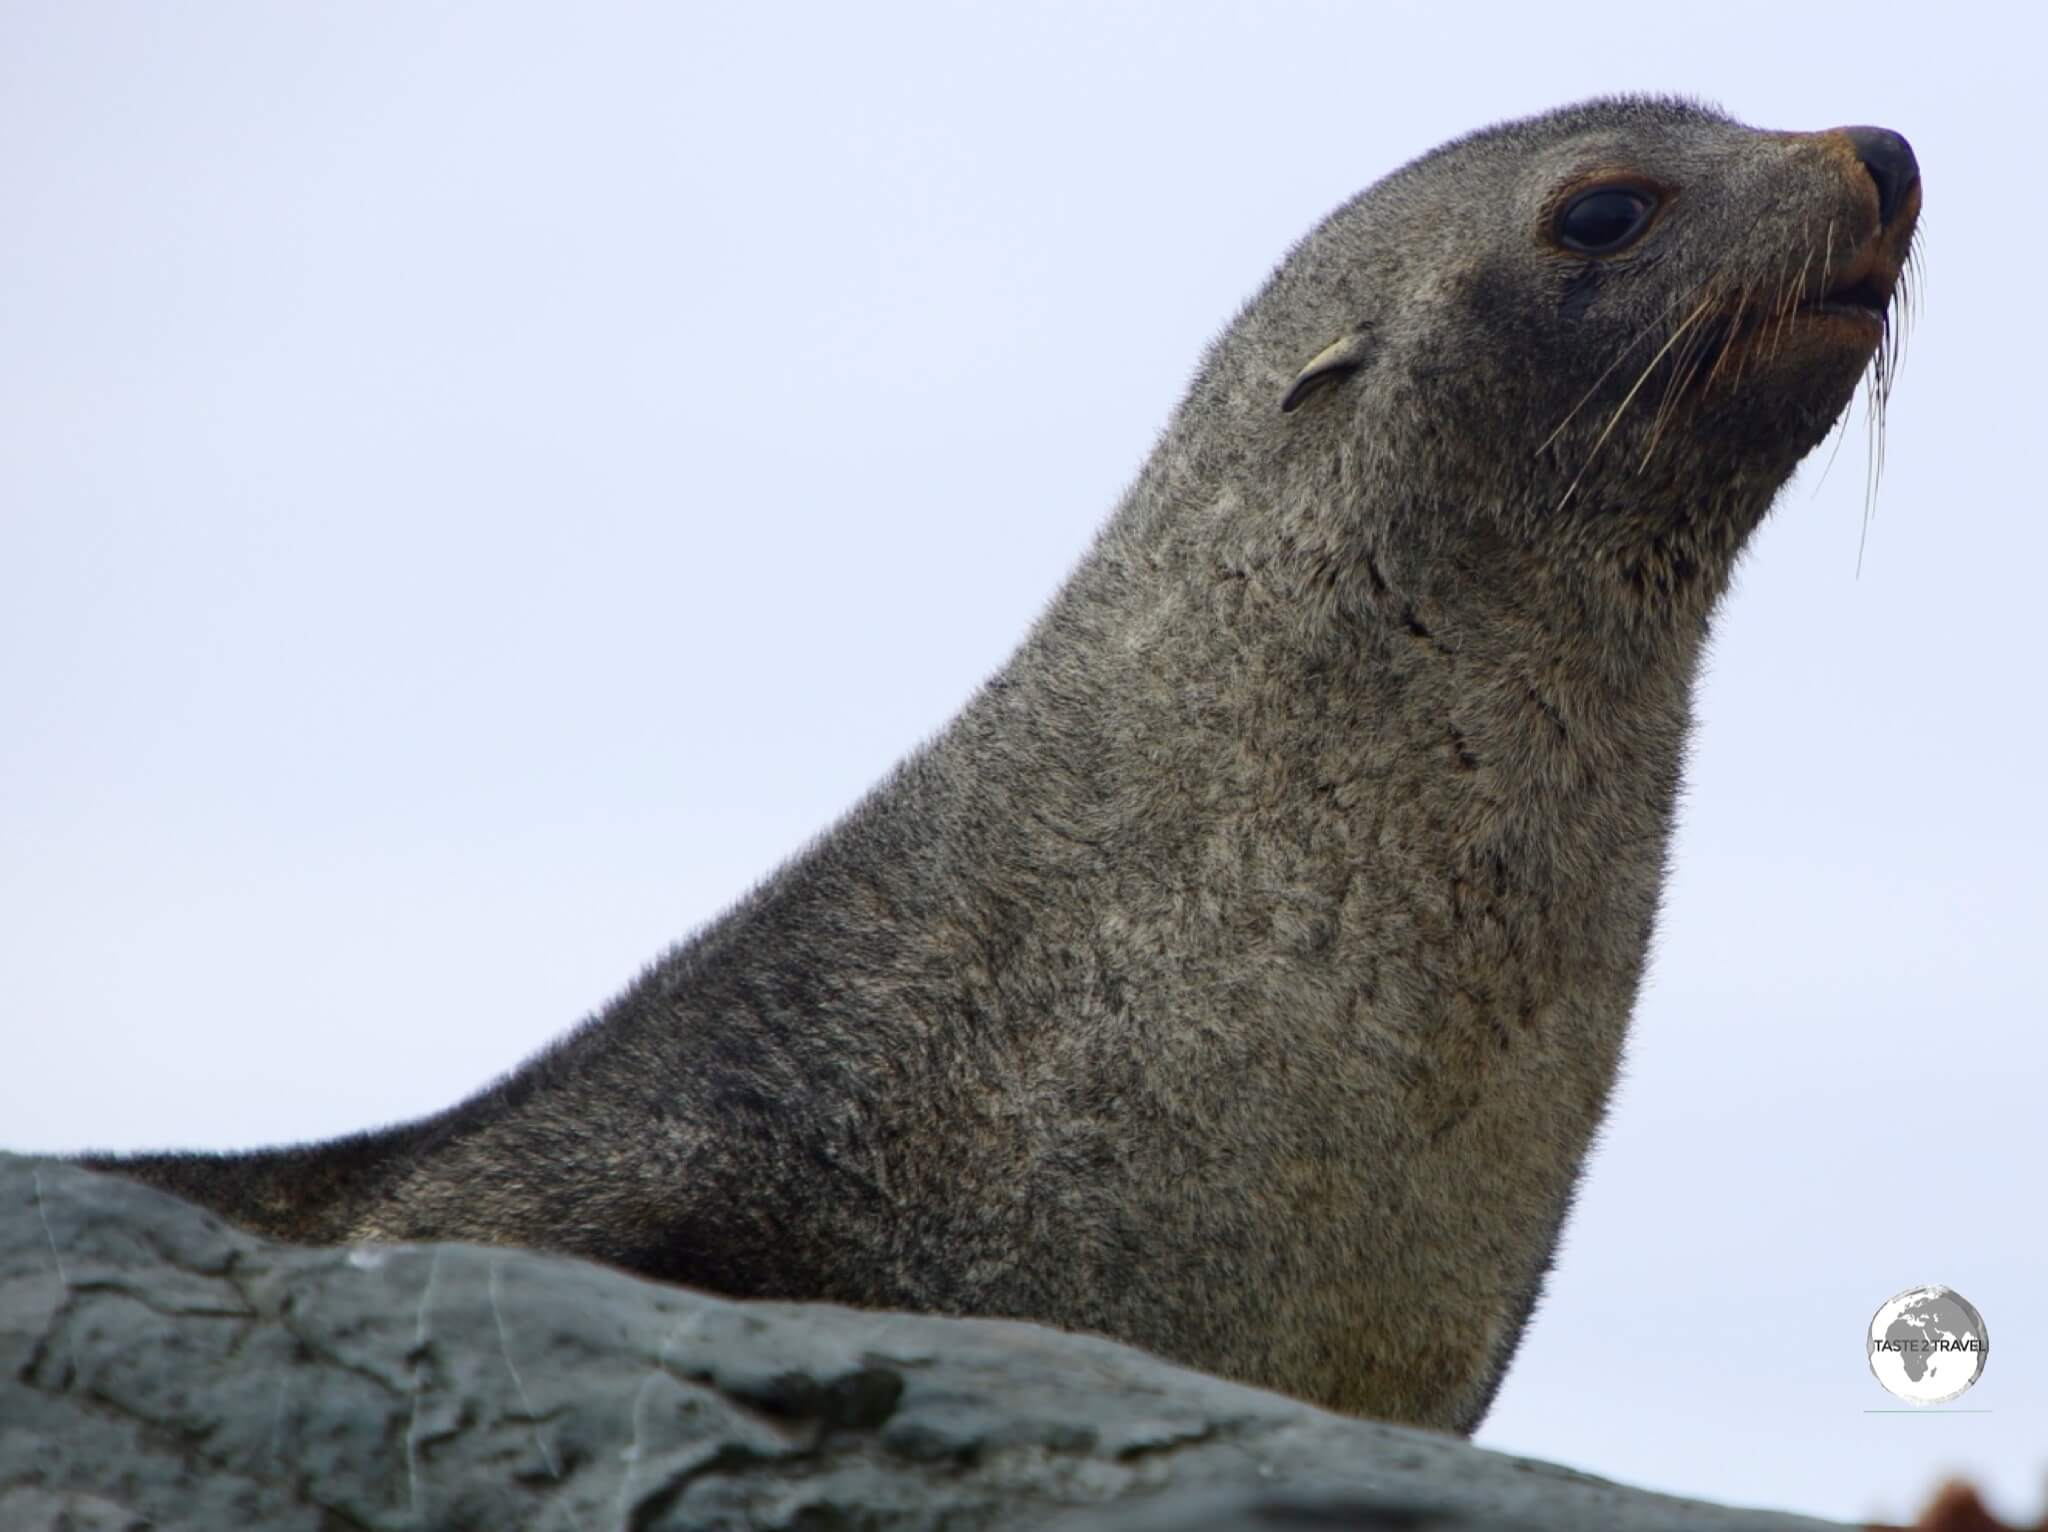 The fur Seal is the only 'eared' seal in Antarctica. All other seals are 'True seals' - i.e. they do not have ears.